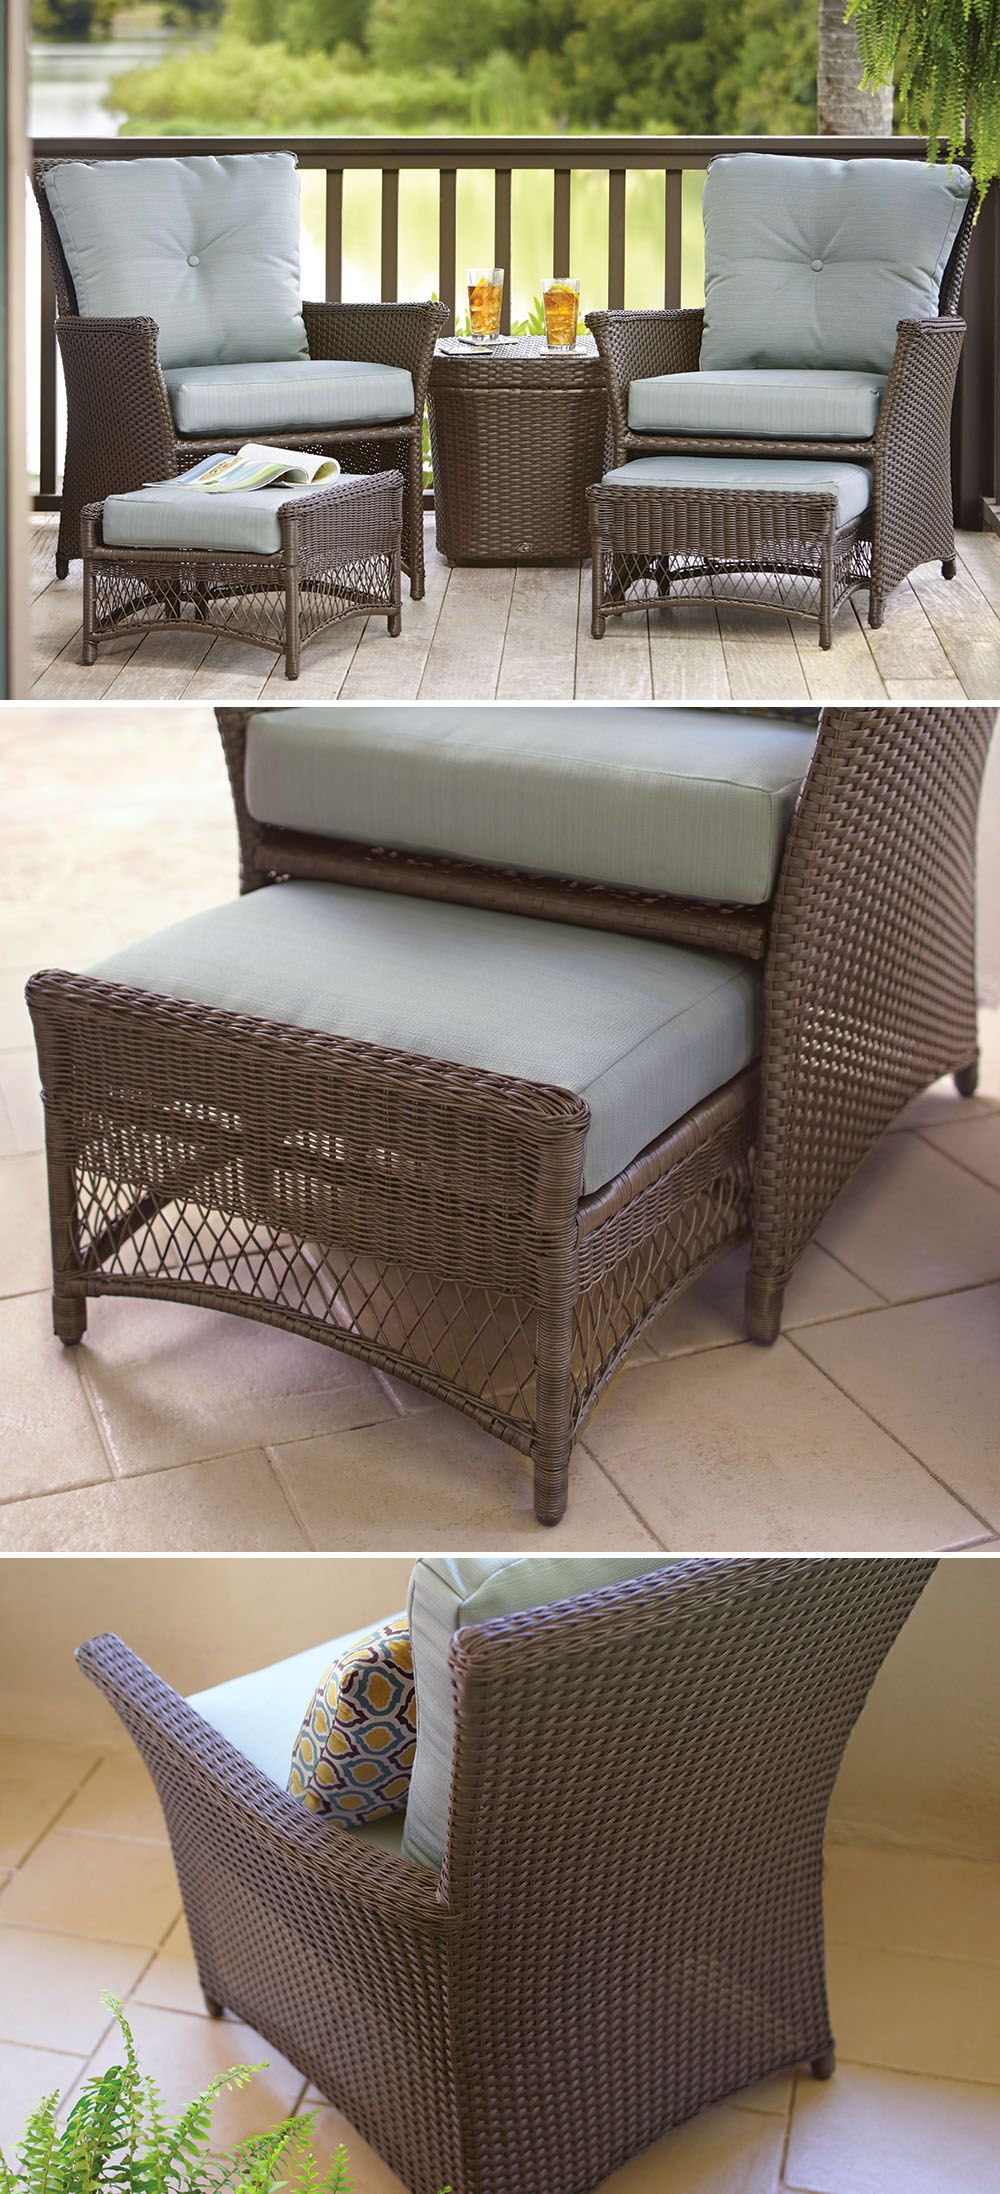 patio chairs for cheap walgreens lift electric this affordable set is just the right size your small balcony or porch it includes two stationary cushions lumbar pillows